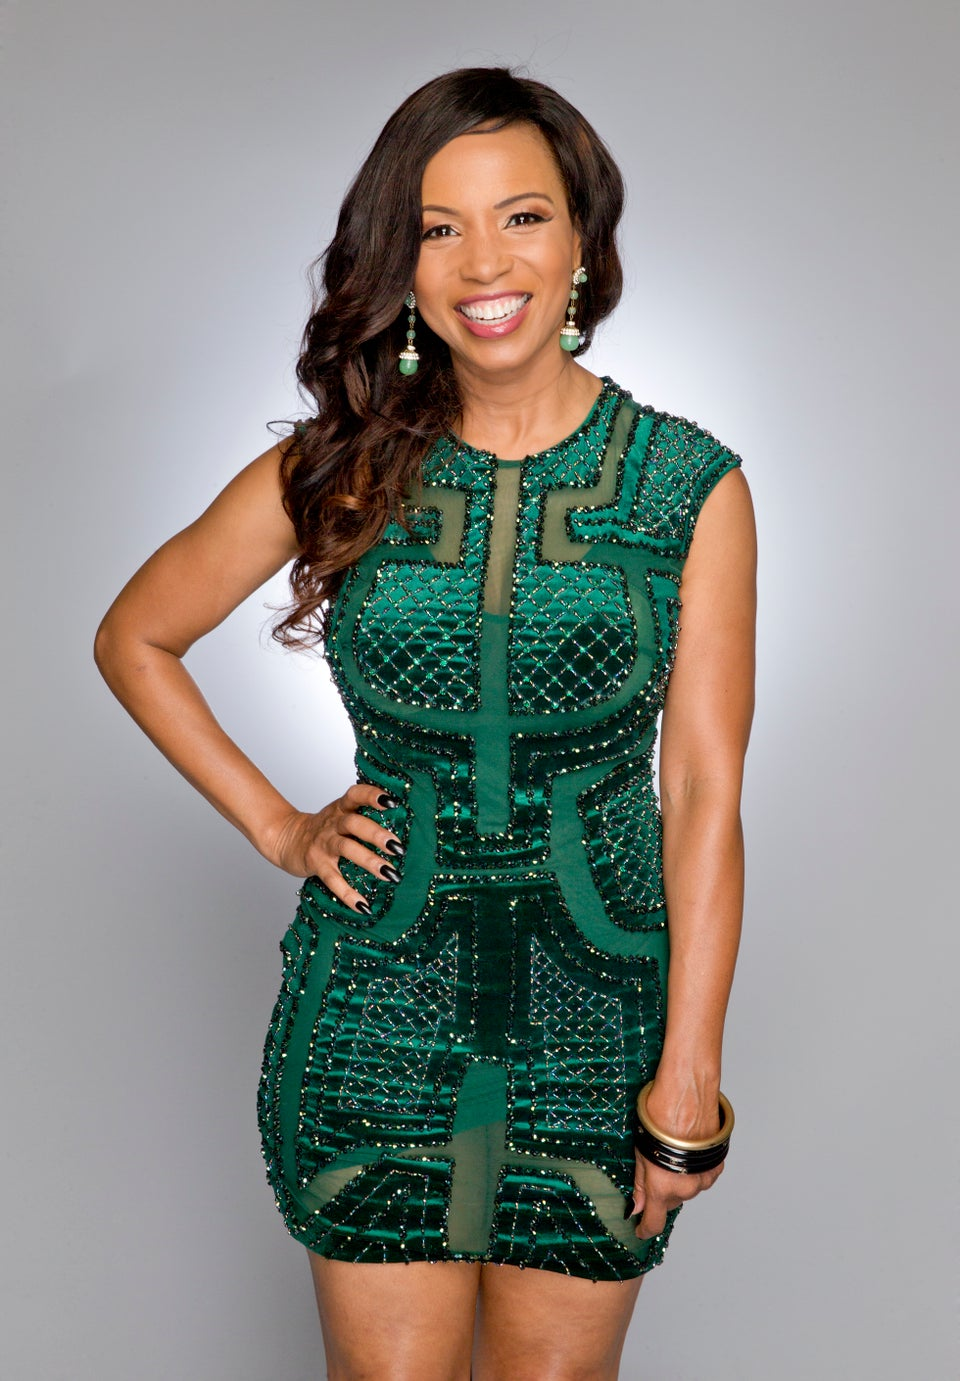 Logan Actress Elise Neal Shares Her Diet and Fitness Tips for Looking Young at 50